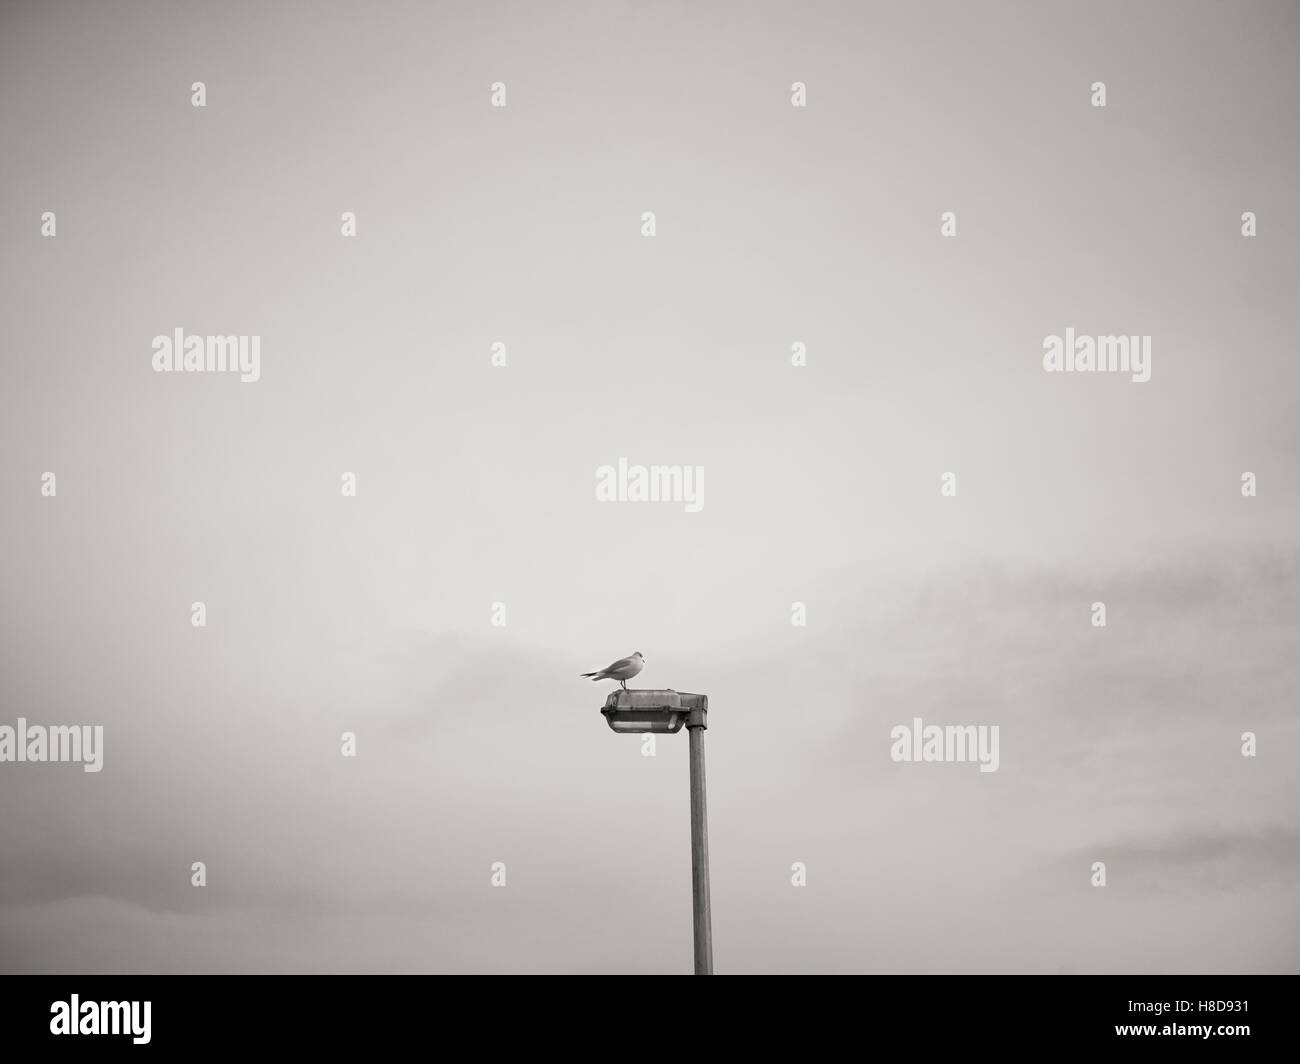 seagull landing sitting on a lamp post / streetlight in black and white - Stock Image